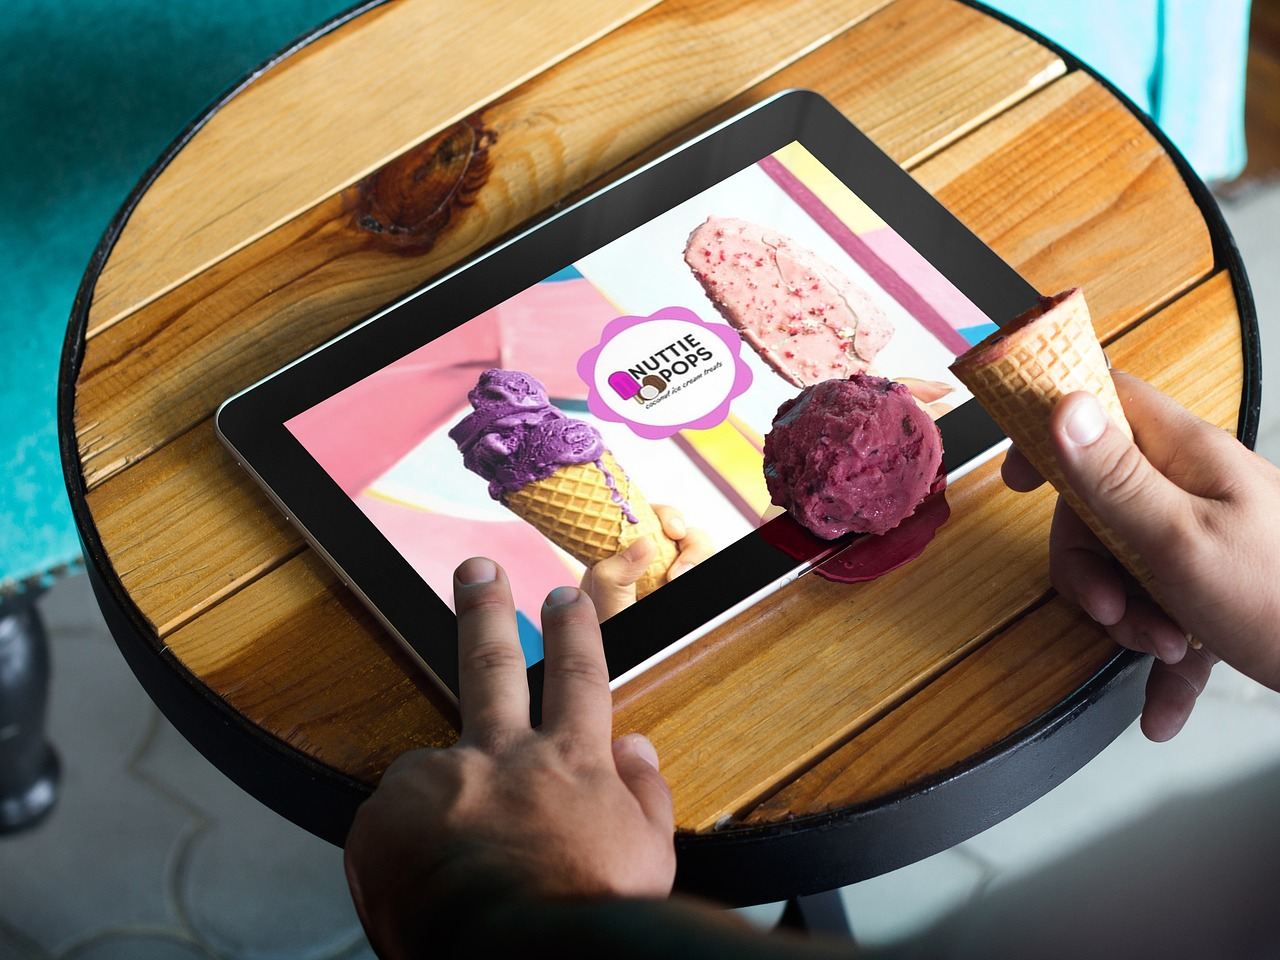 The Creative Use Of iPads In The Restaurant Industry